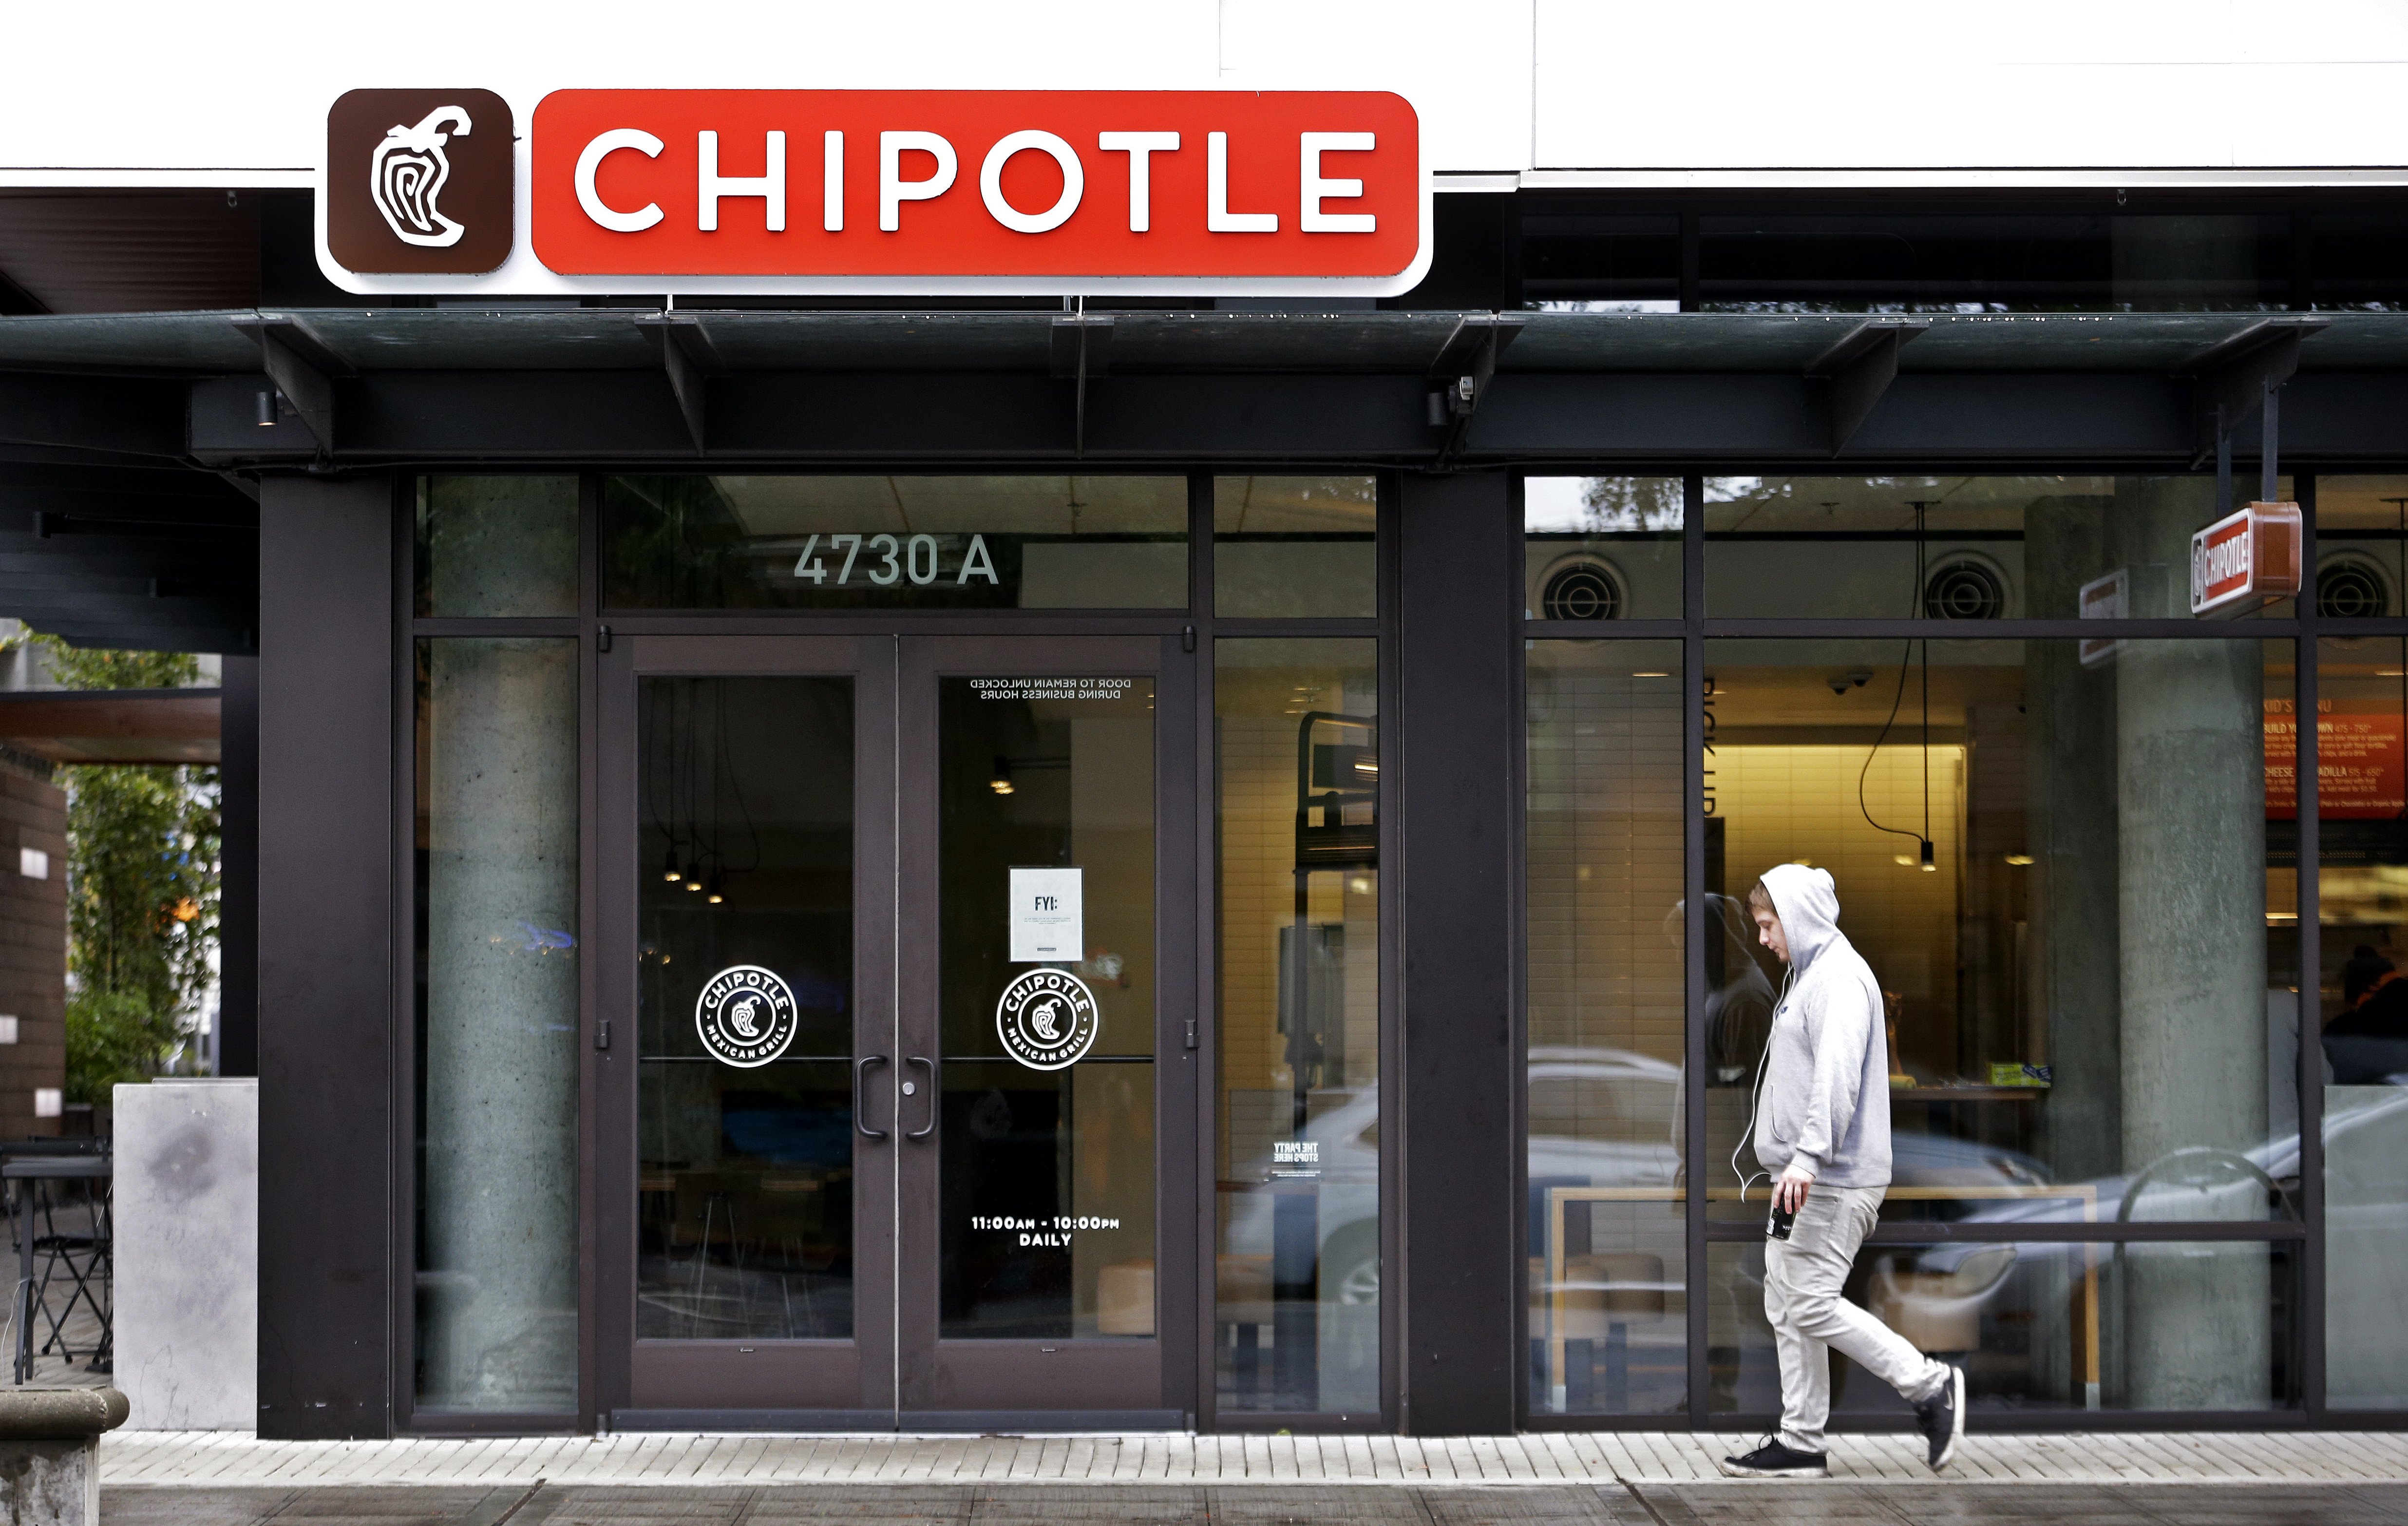 A pedestrian walks past a closed Chipotle restaurant Monday, November 2, 2015, in Seattle. Photo: AP